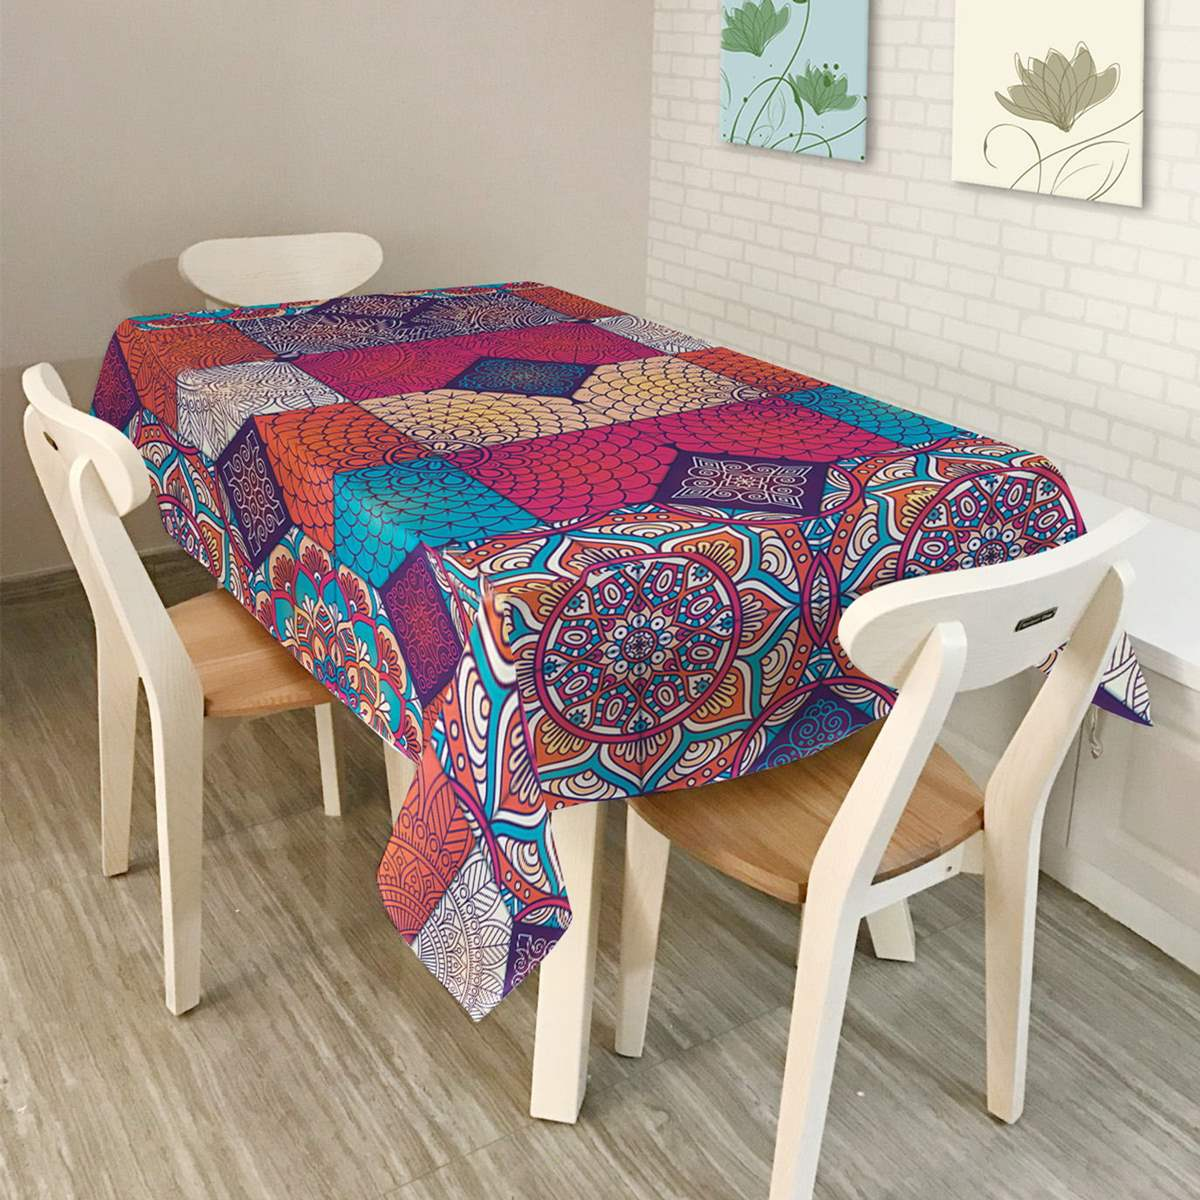 waterproof oilproof square cover lilac bouquet vinyl tablecloth party table cloth starry sky digital cover for. beautiful ideas. Home Design Ideas